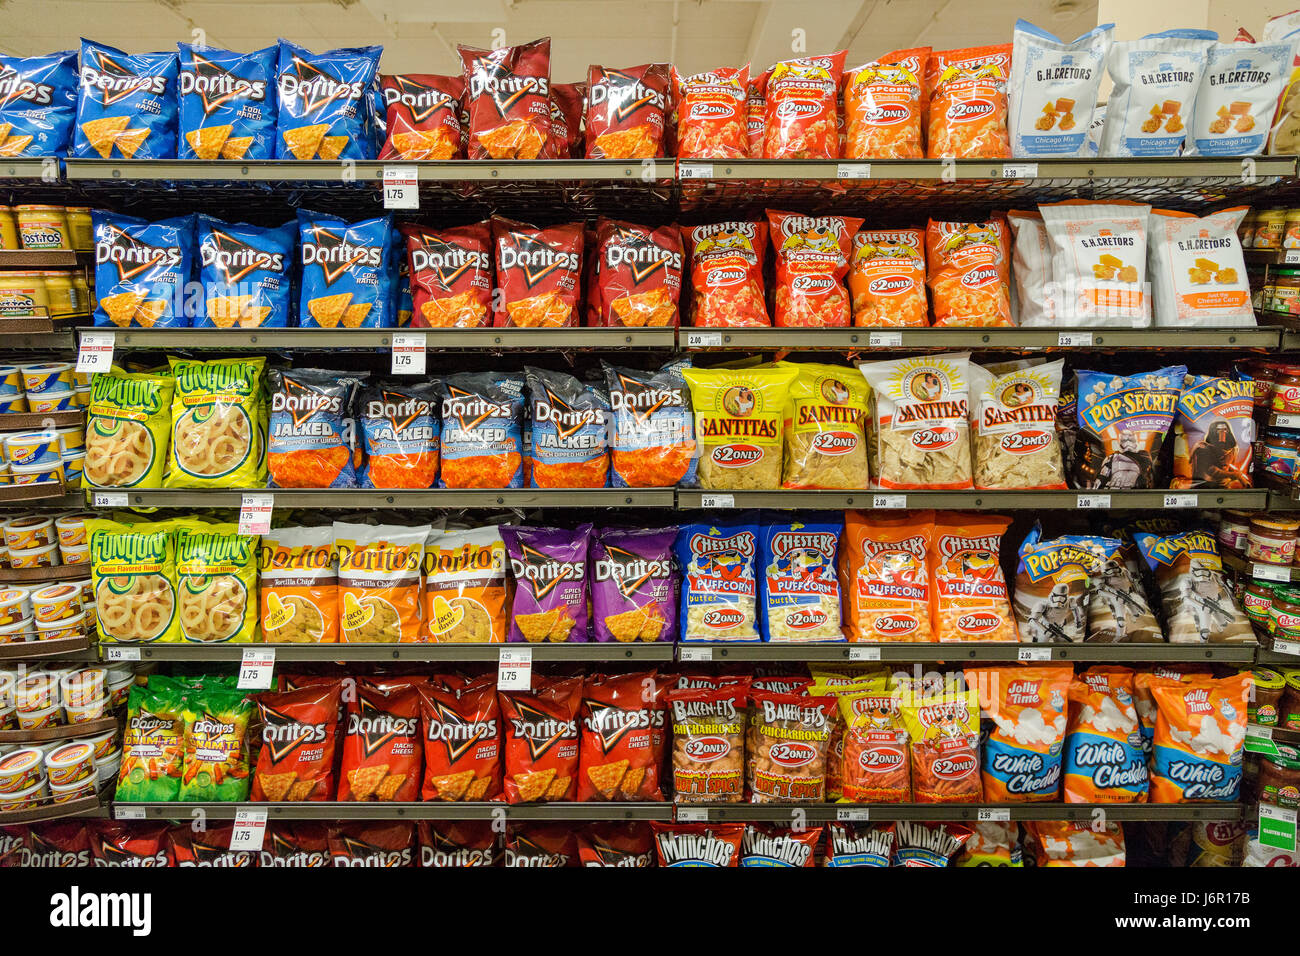 grocery store shelves with bags of junk food snacks for sale stock photo 141876767 alamy. Black Bedroom Furniture Sets. Home Design Ideas